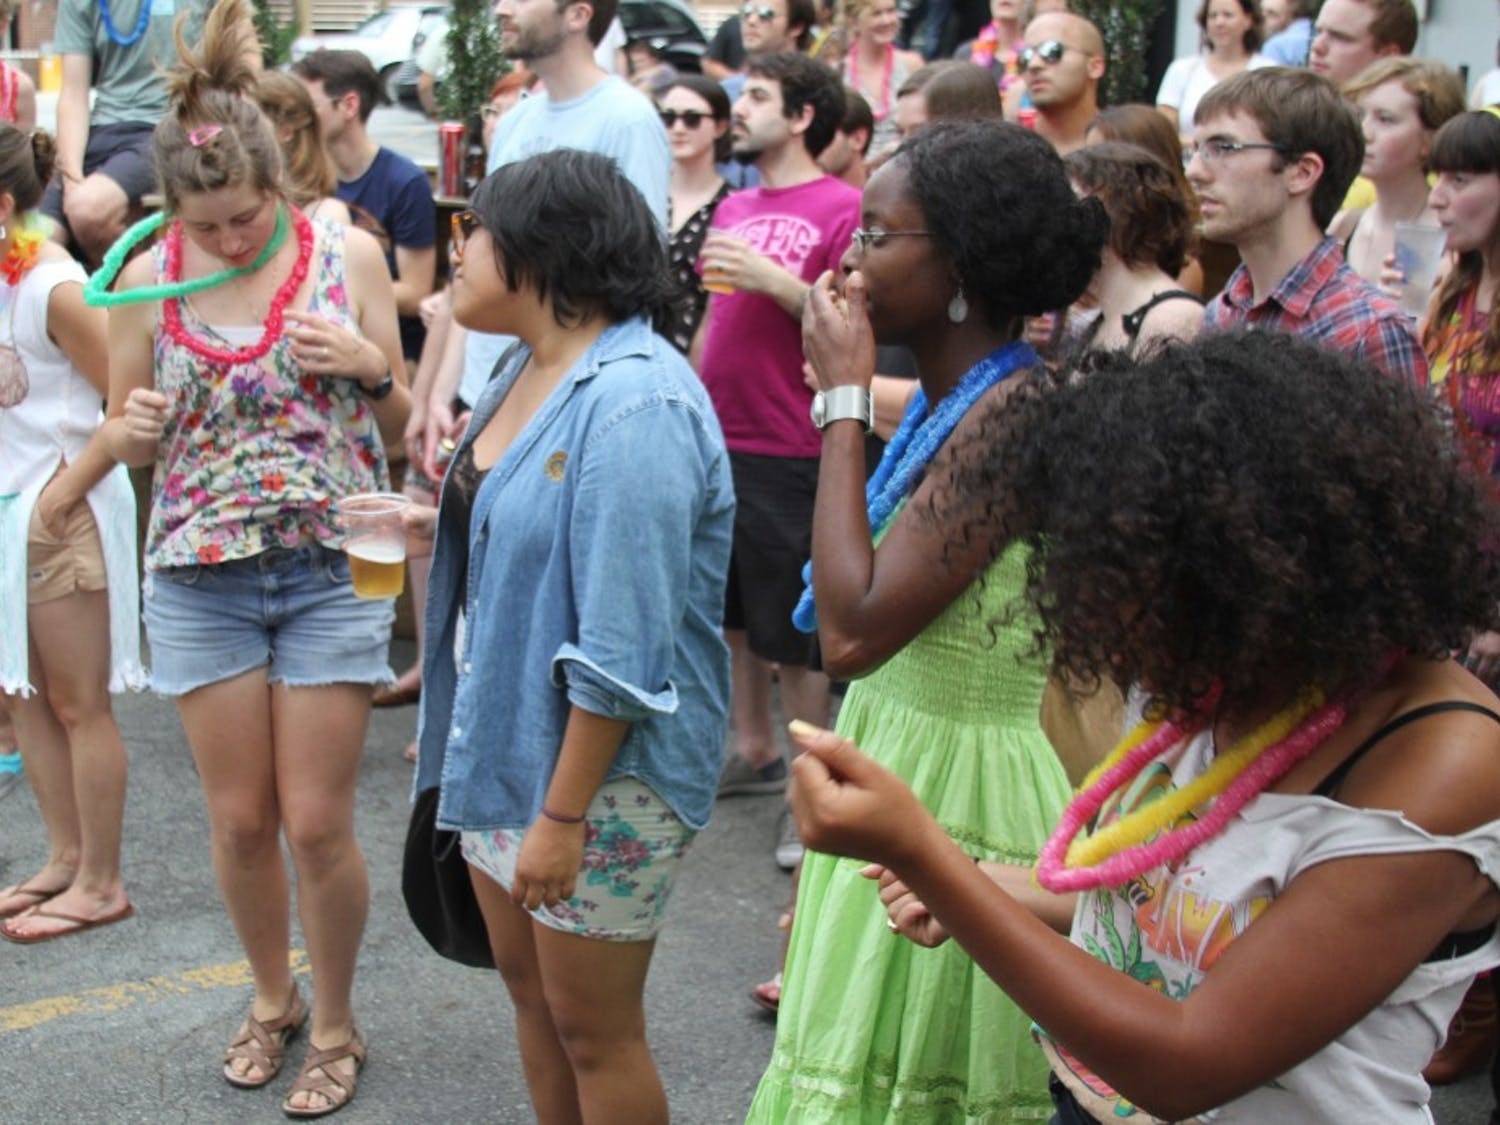 People at the barbeque dance along to music by the band Flesh Wounds.